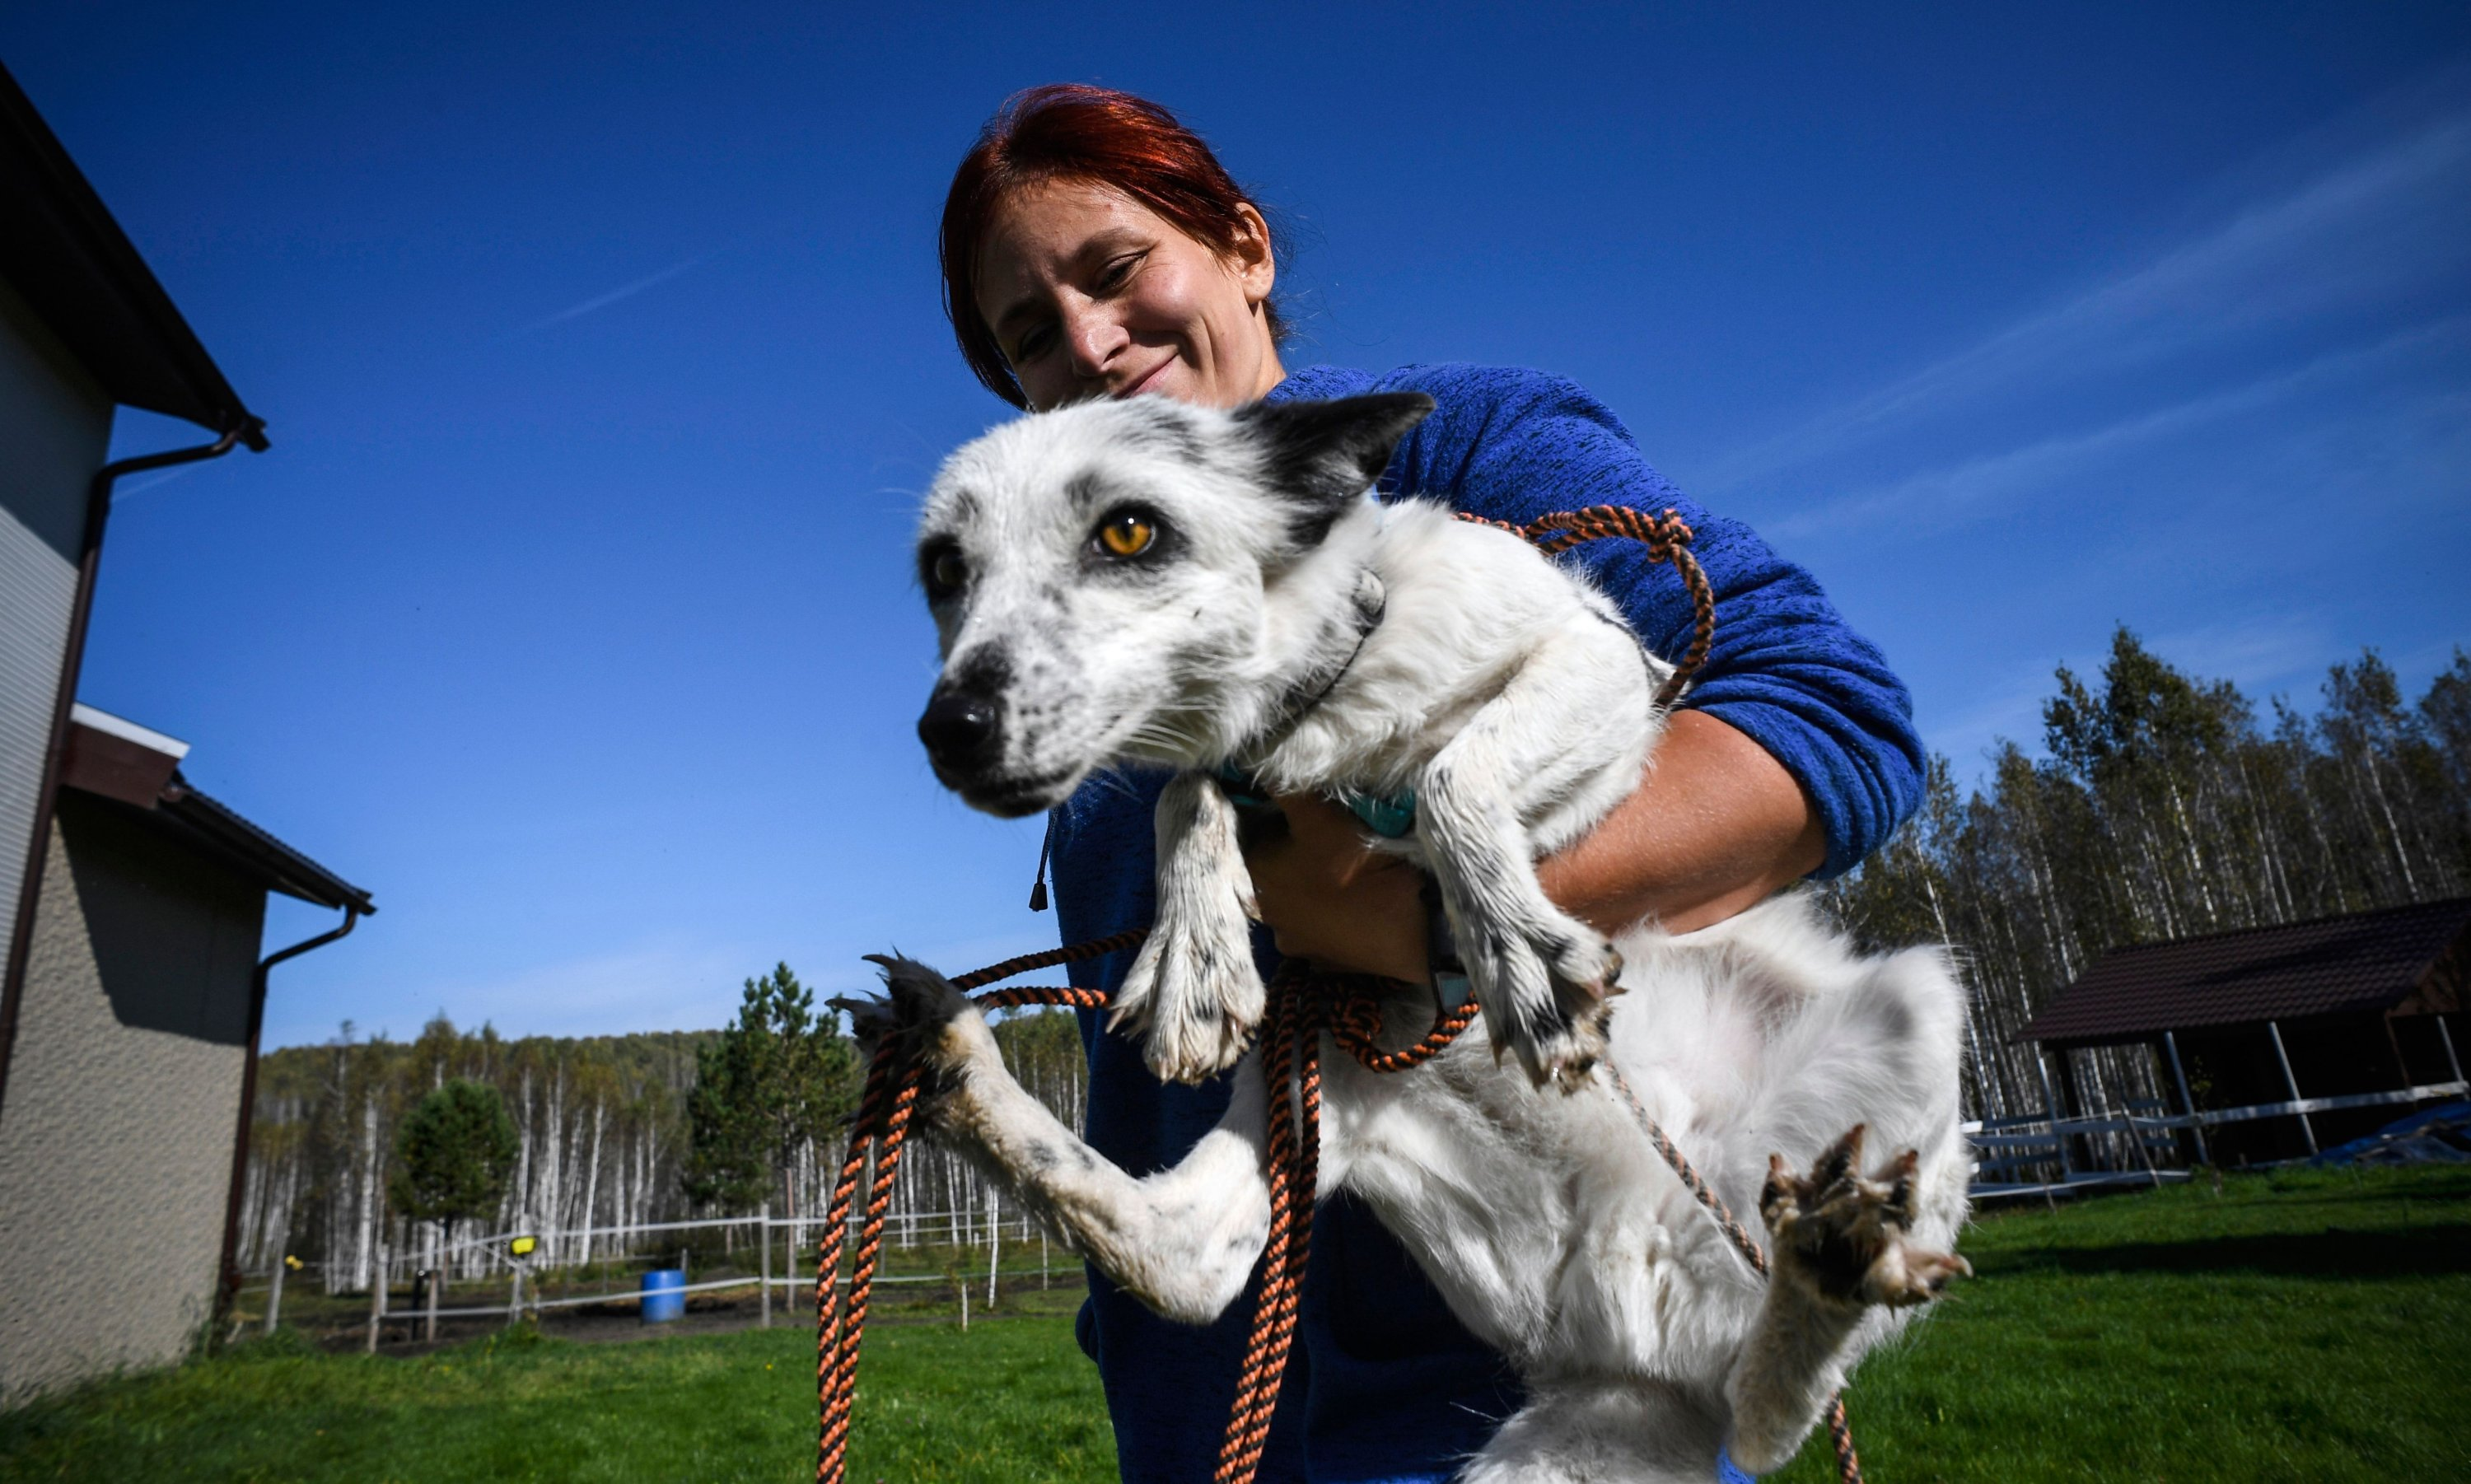 Tatyana Abramova, 33, carries her pet fox Plombir at her countryside house outside the Siberian city of Novosibirsk on Sept. 12, 2020.  (AFP Photo)